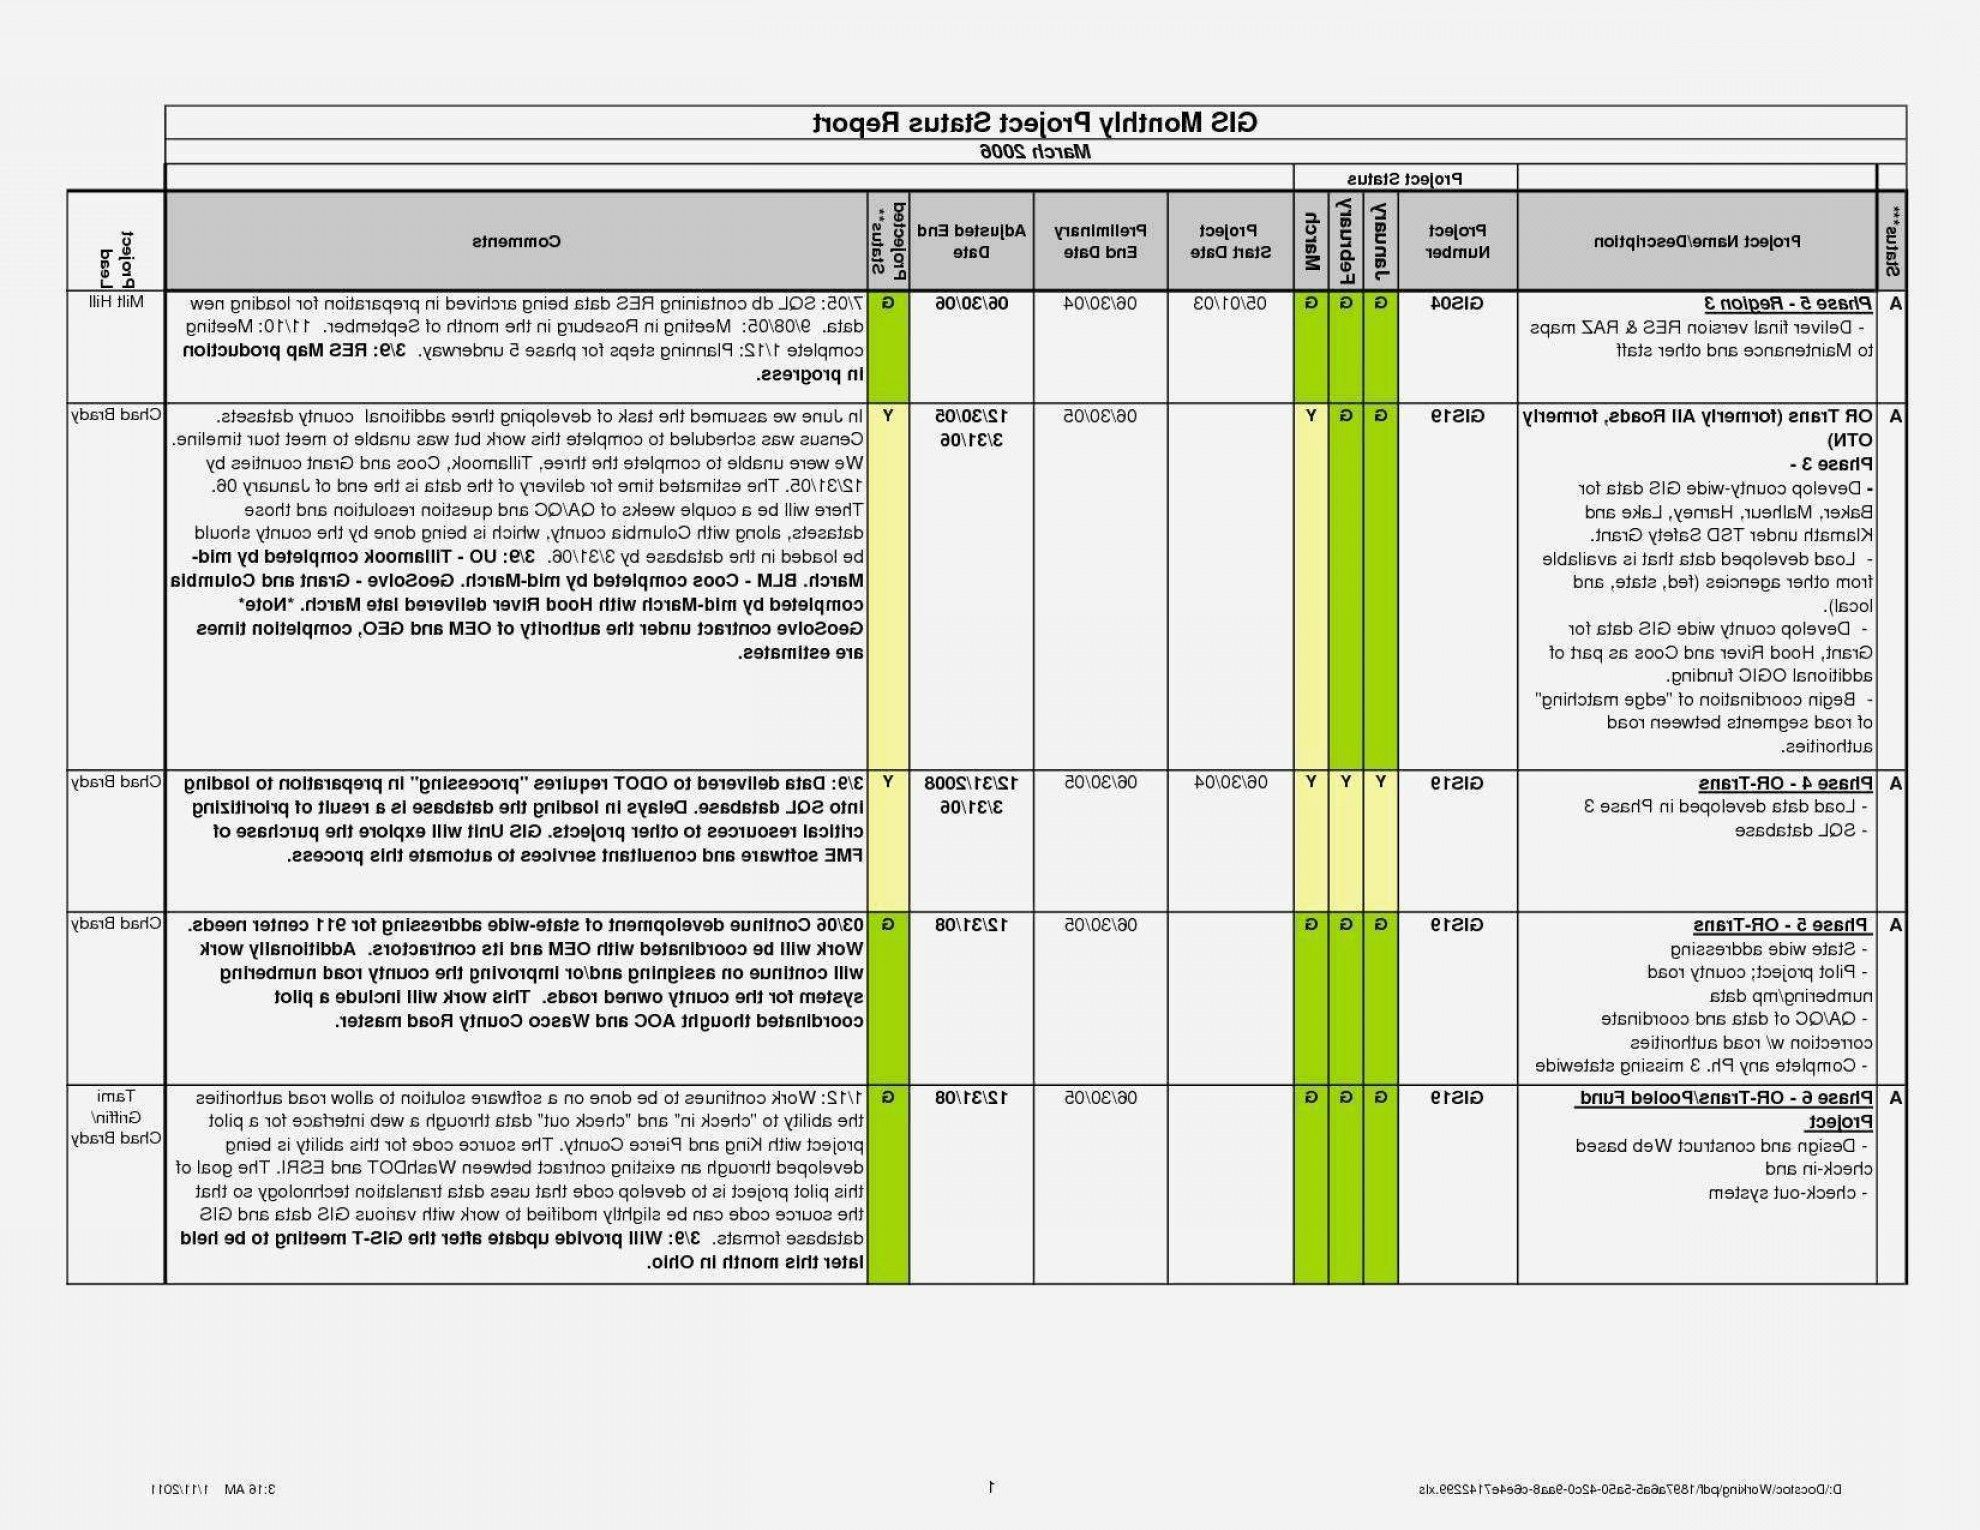 002 Impressive Project Management Progres Report Template Excel High Resolution  StatuFull